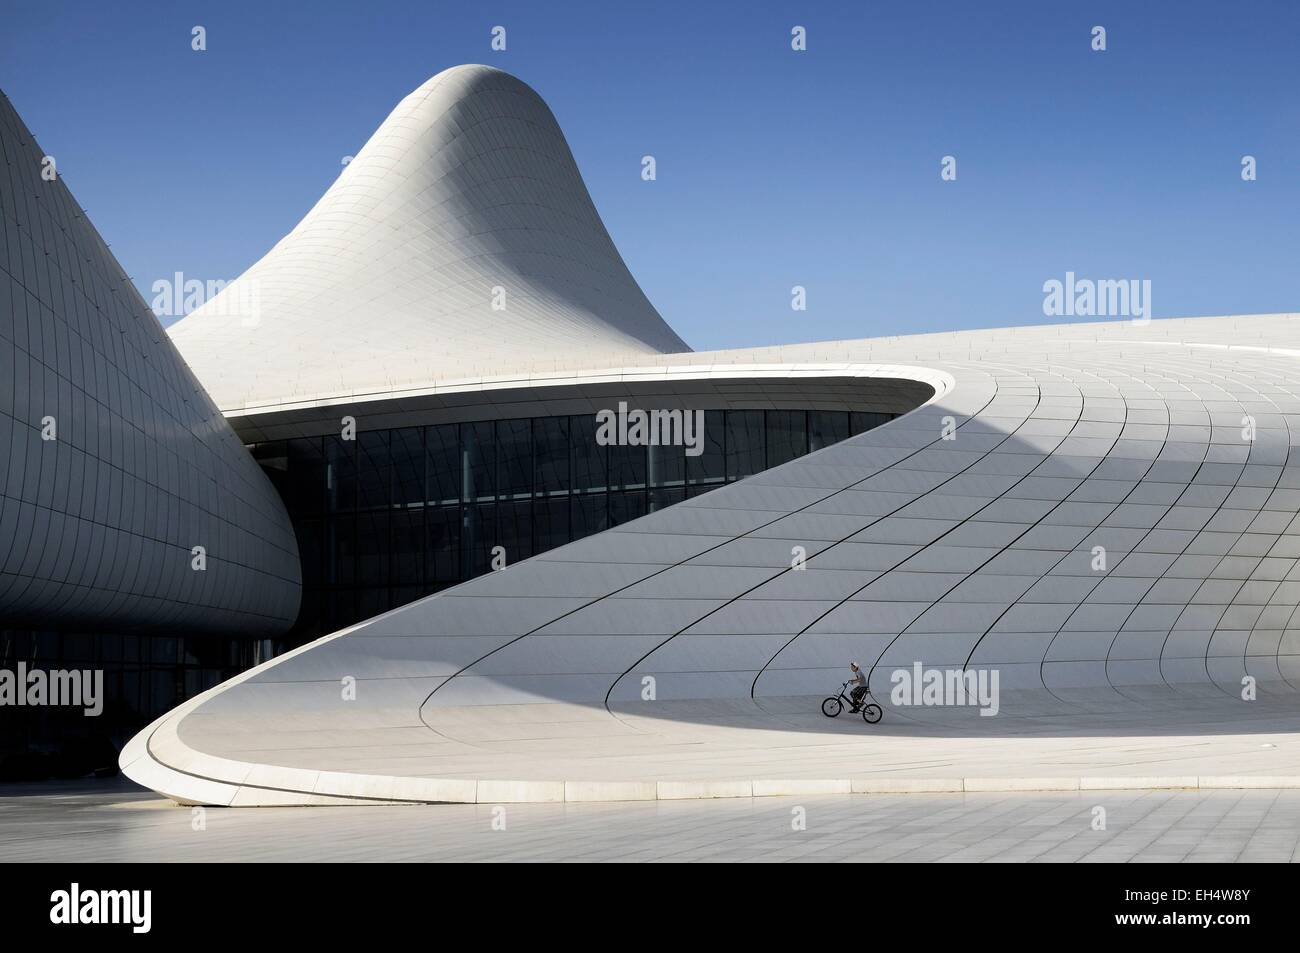 Azerbaijan, Baku, Heydar Aliyev cultural center futuristic monument designed by the architect Zaha Hadid - Stock Image